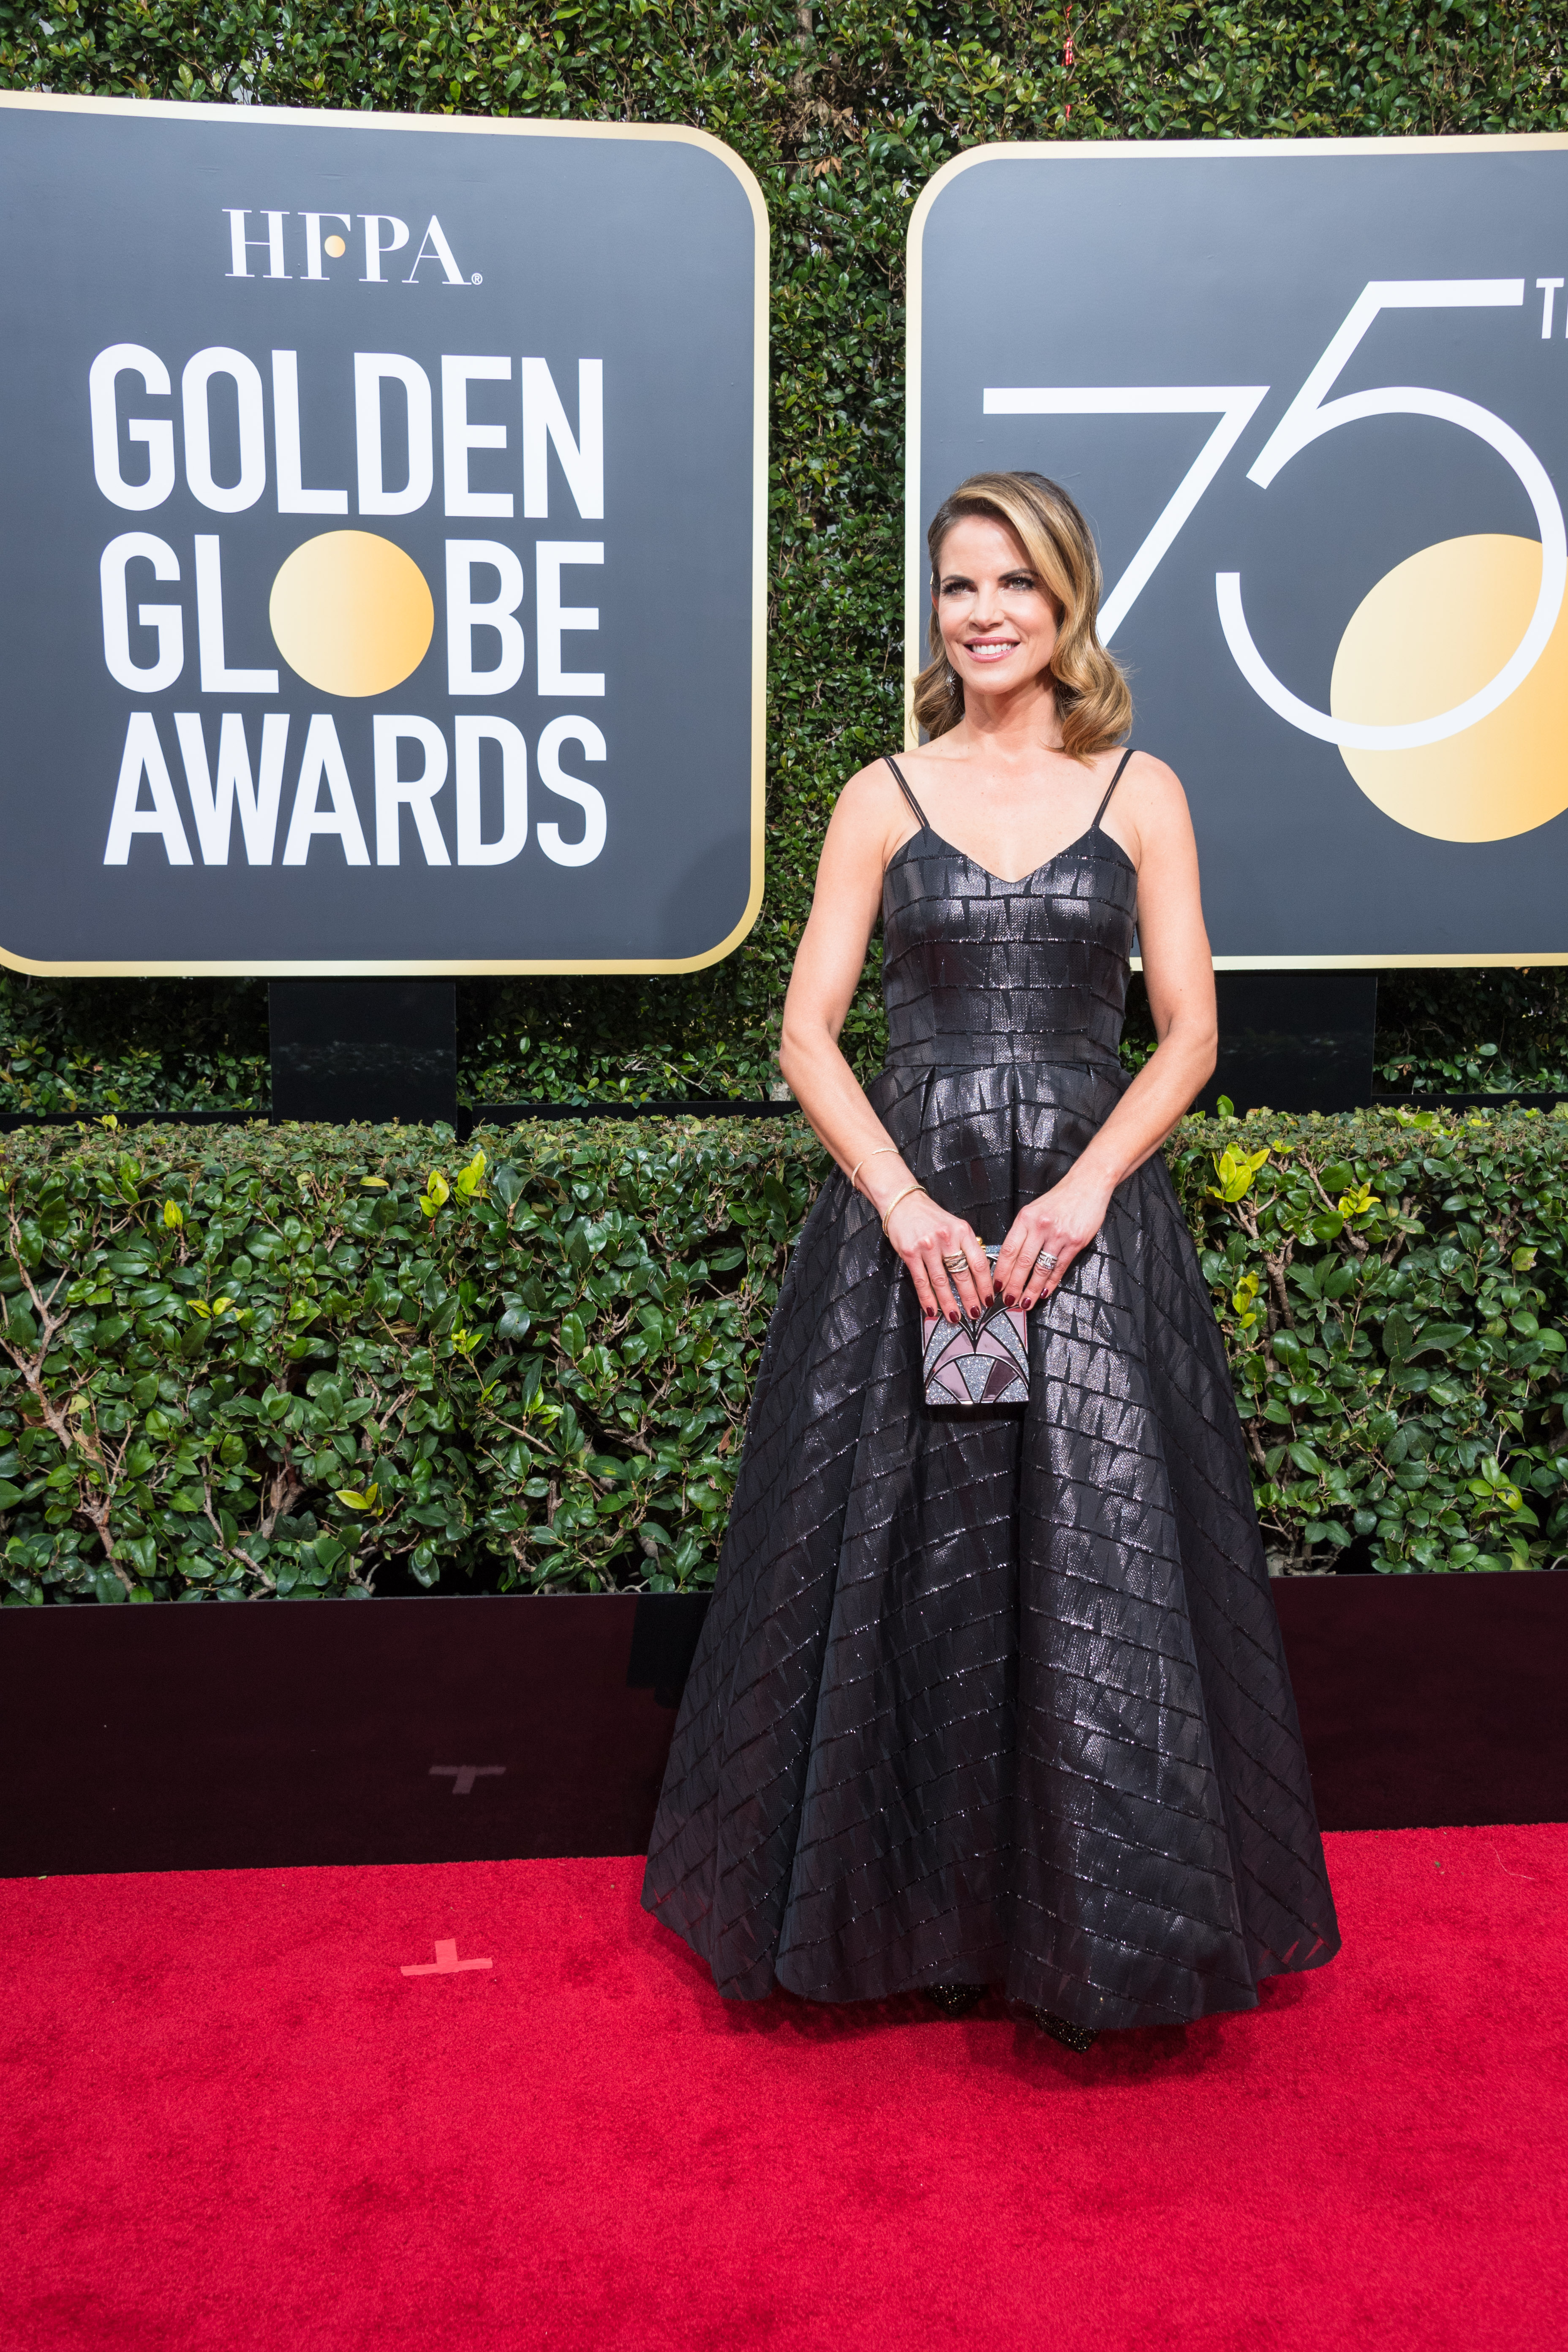 Natalie Morales arrives at the 75th Annual Golden Globes Awards at the Beverly Hilton in Beverly Hills, CA on Sunday, January 7, 2018.